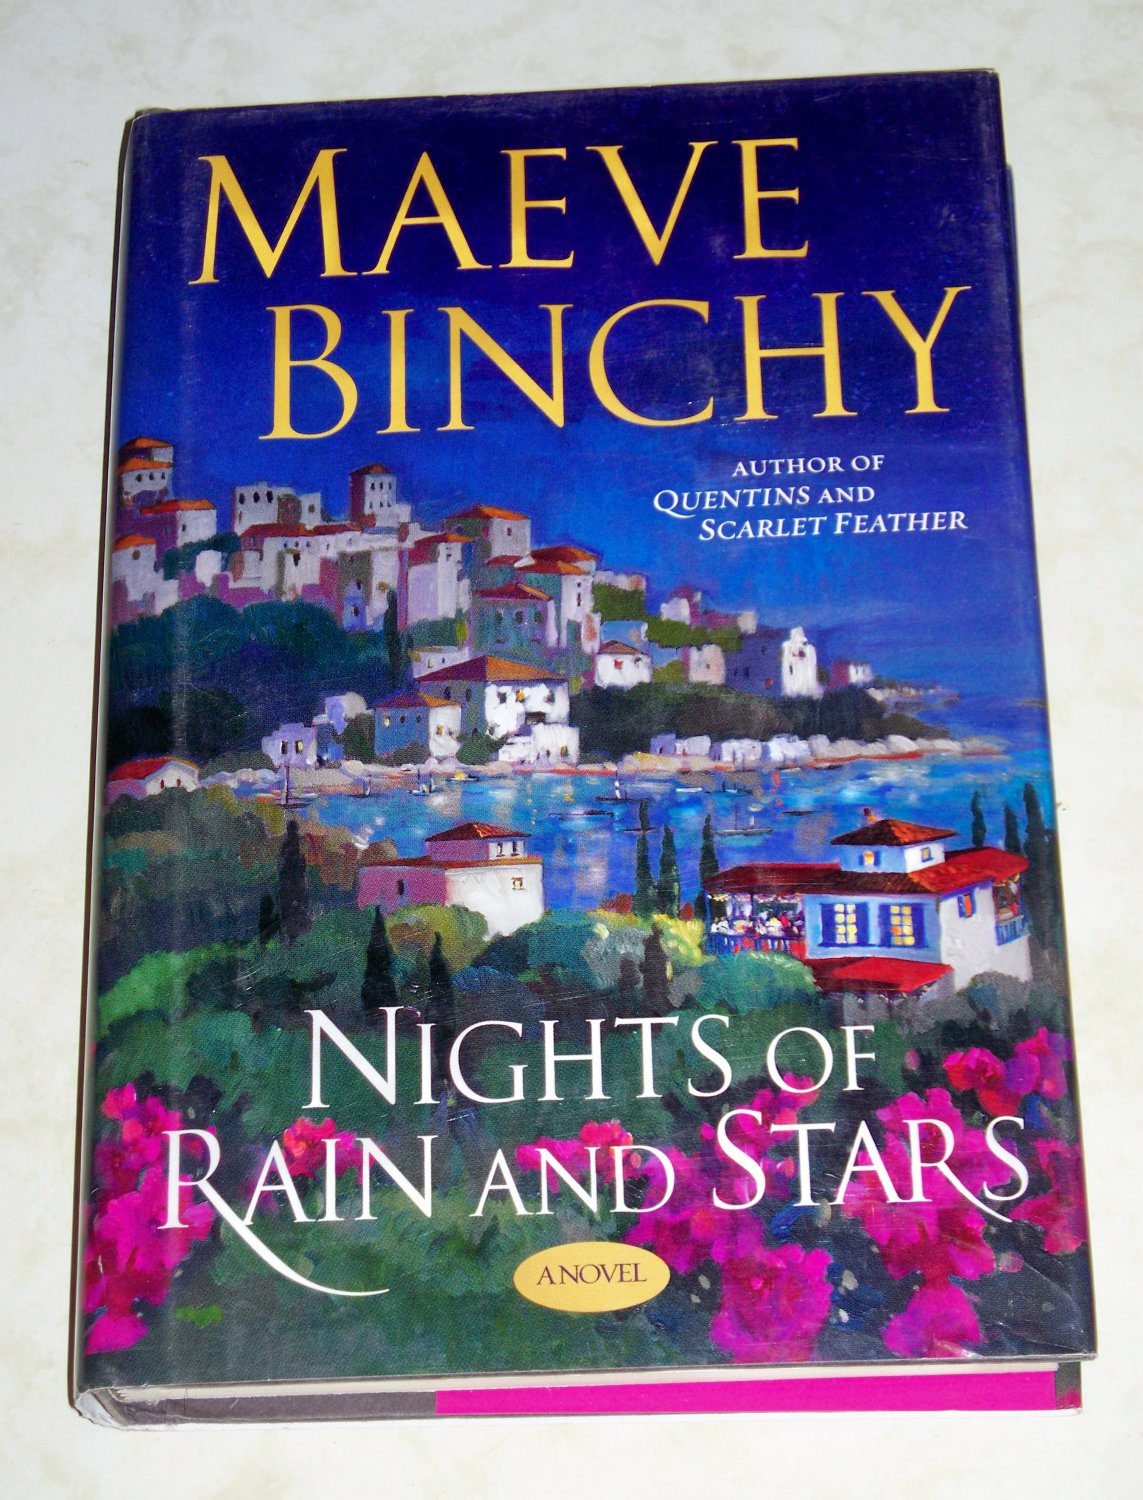 Nights of Rain and Stars by Maeve Binchy, First Printing